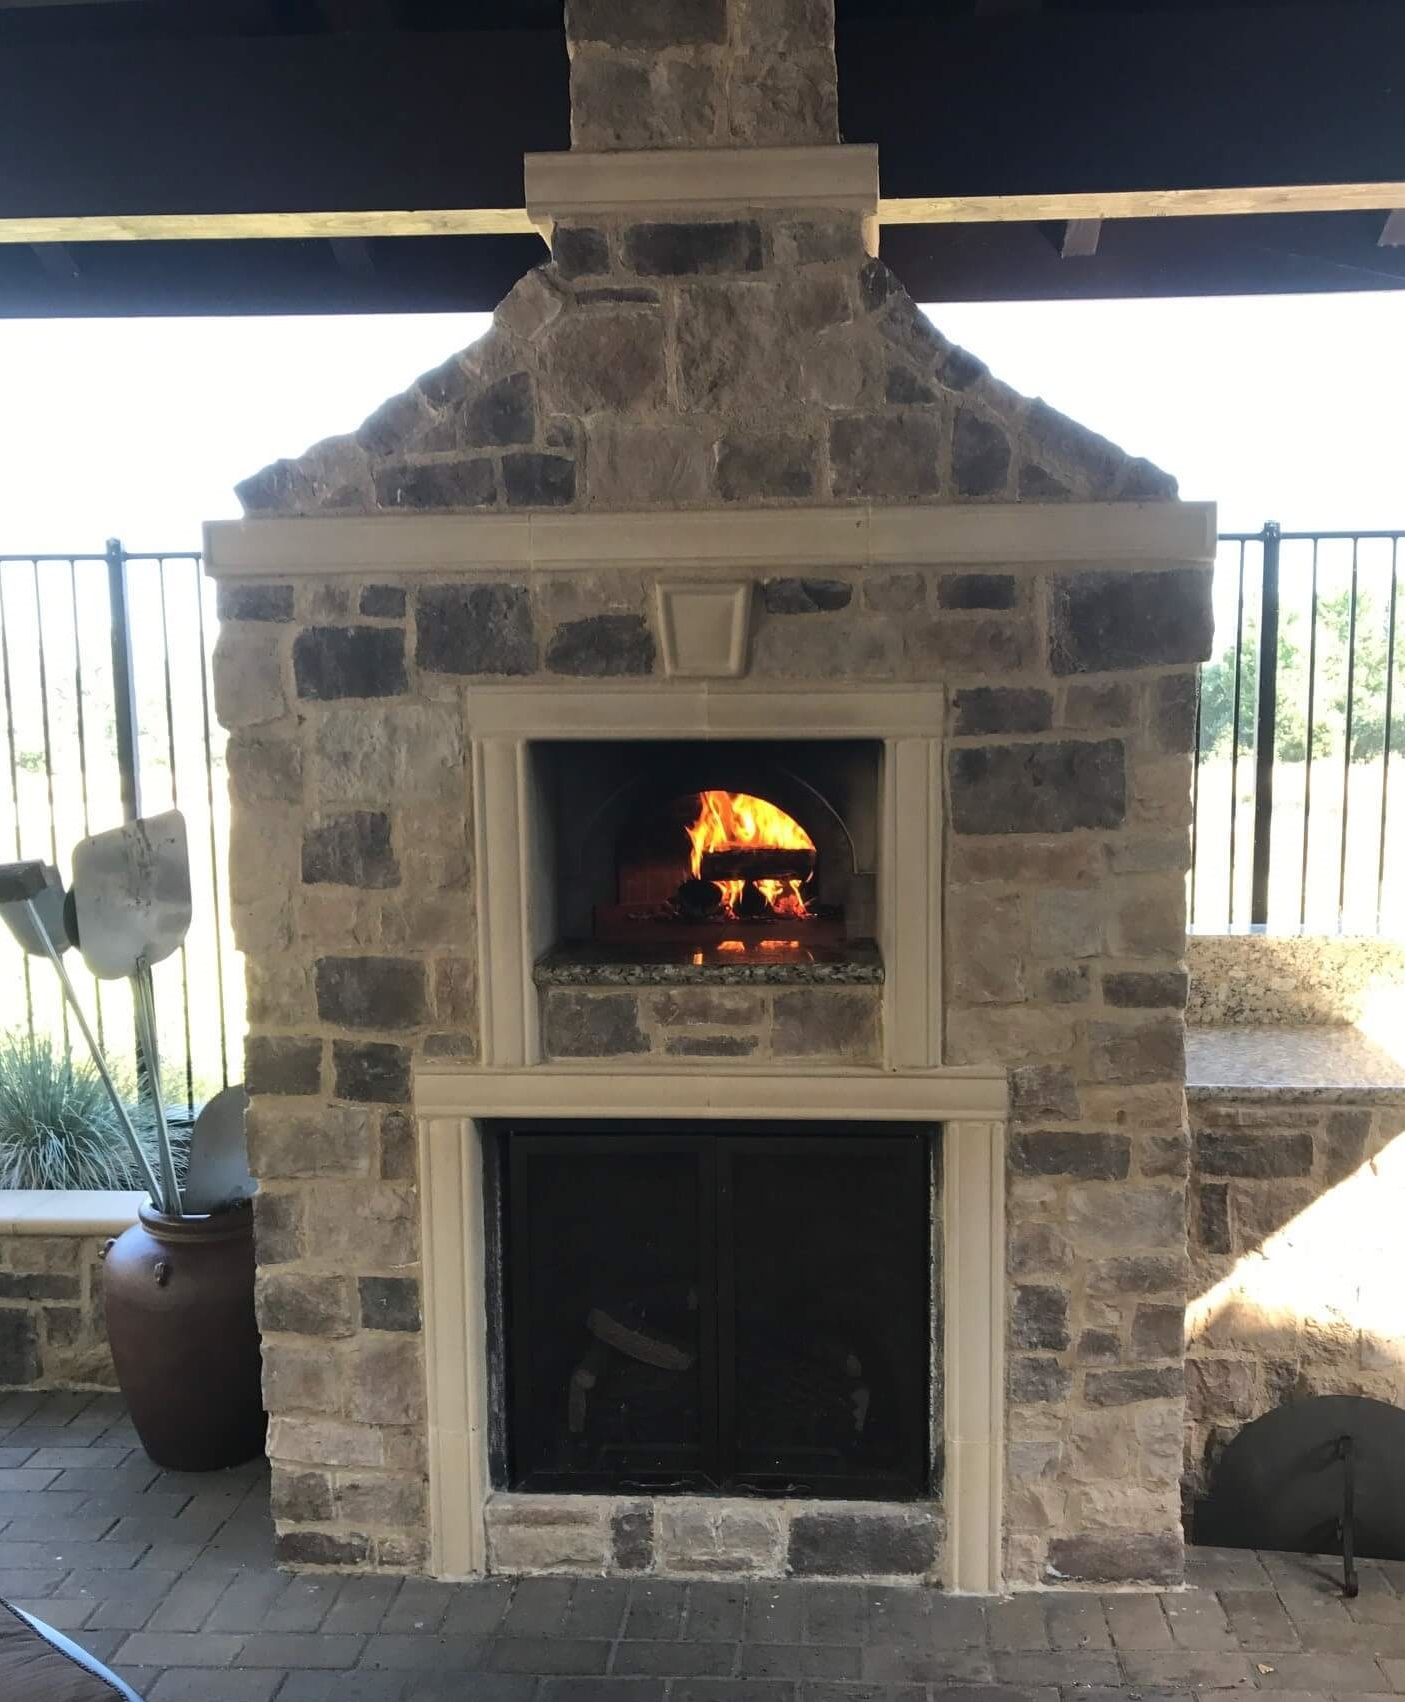 Artigiano Pizza Oven Wood Fired Pizza Oven For Sale Outdoor Kitchen Outdoor Kitchen Design Pizza Oven